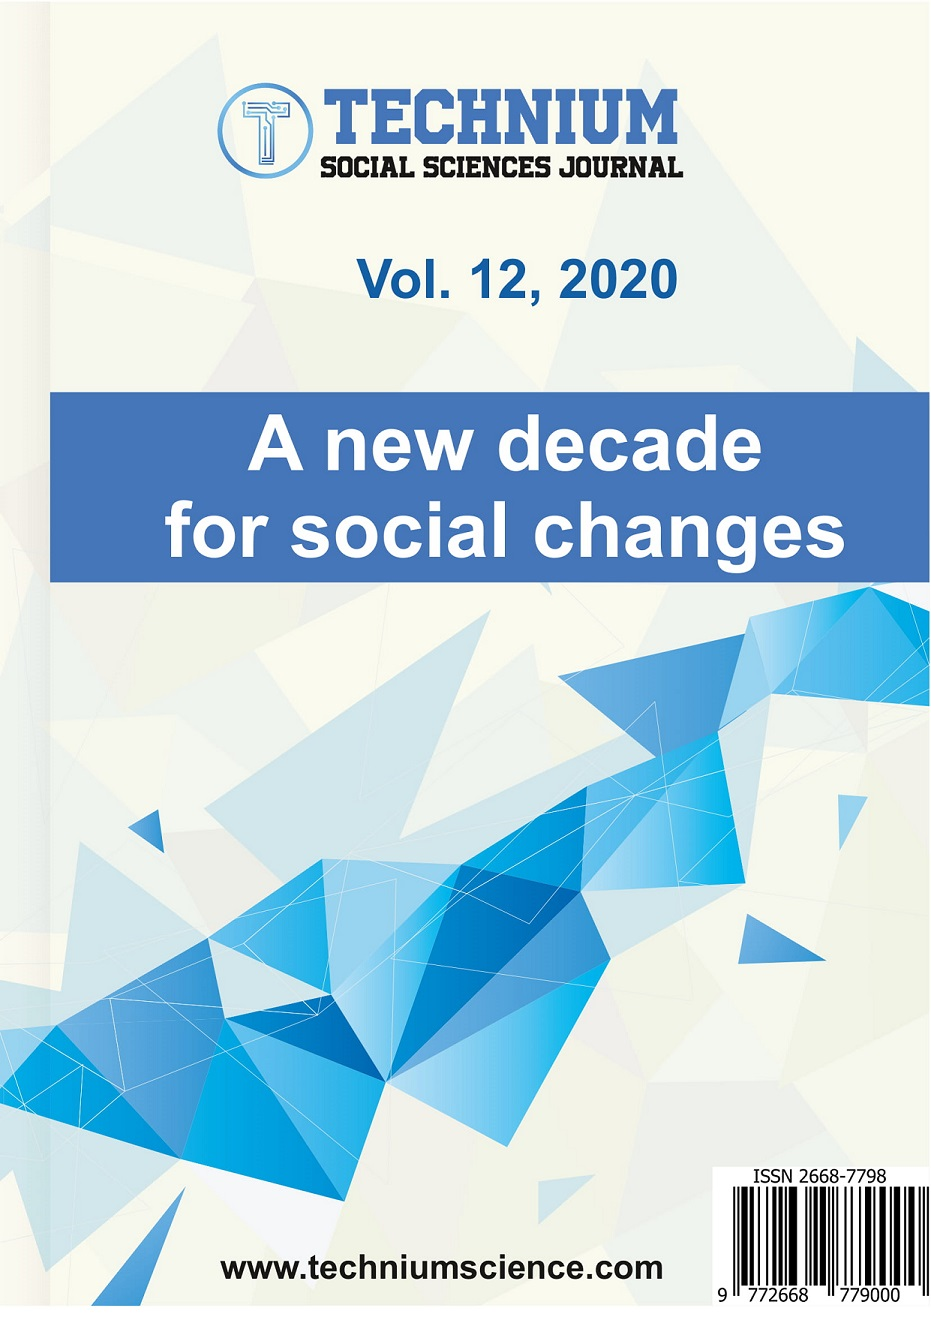 View Vol. 12 (2020): A new decade for social changes